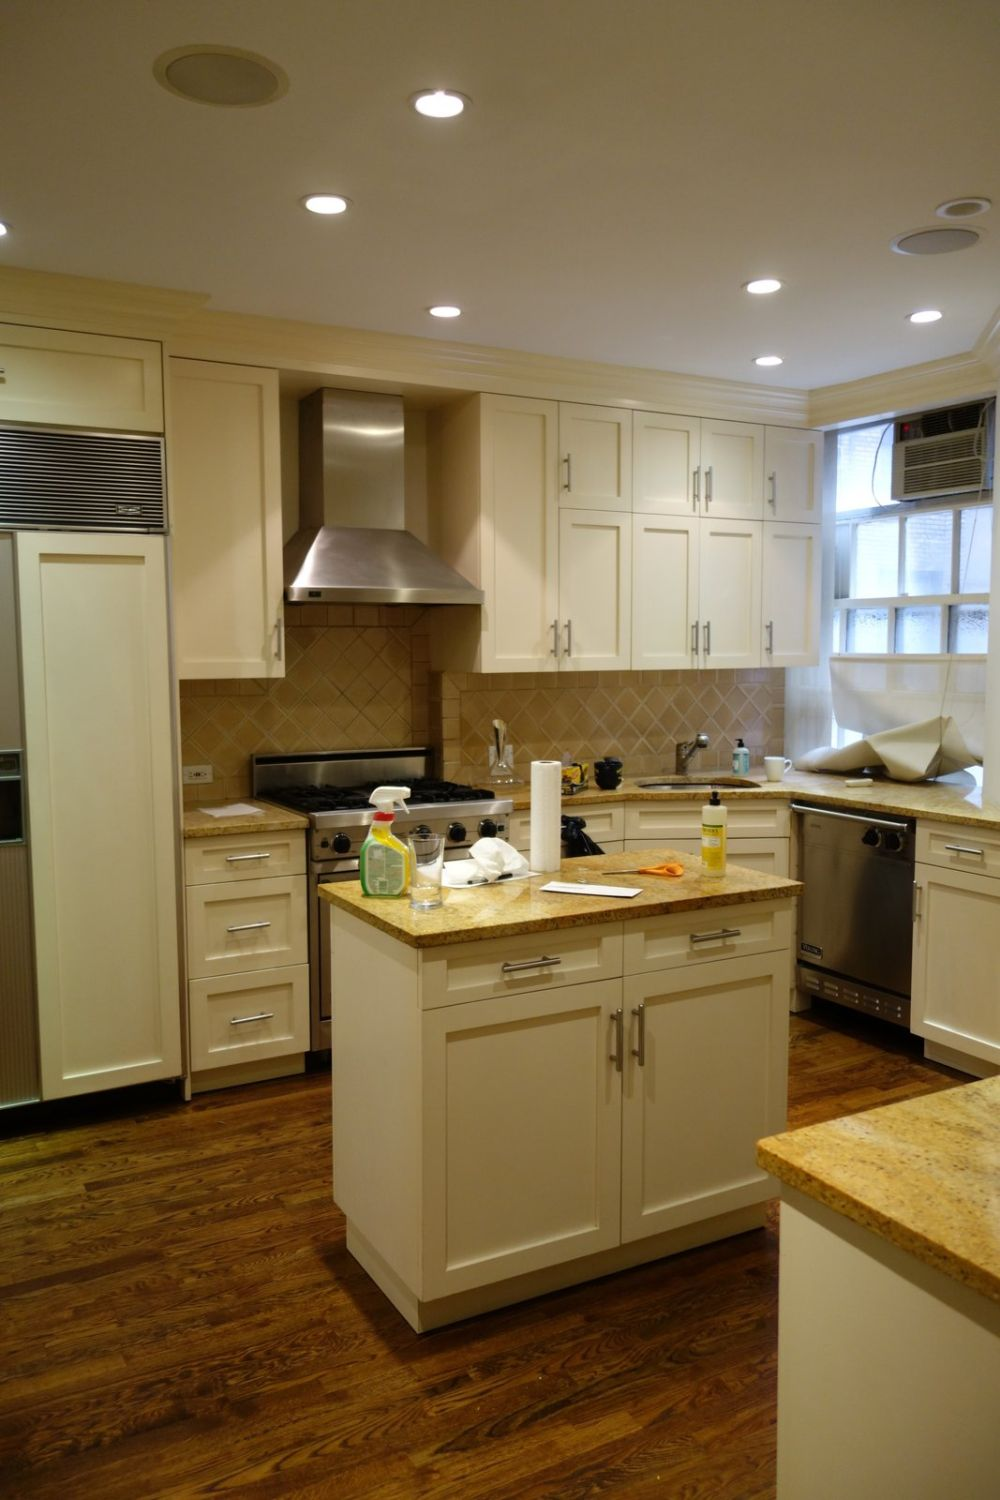 The initial kitchen setup featured lots of furniture which created a rather cluttered appearance